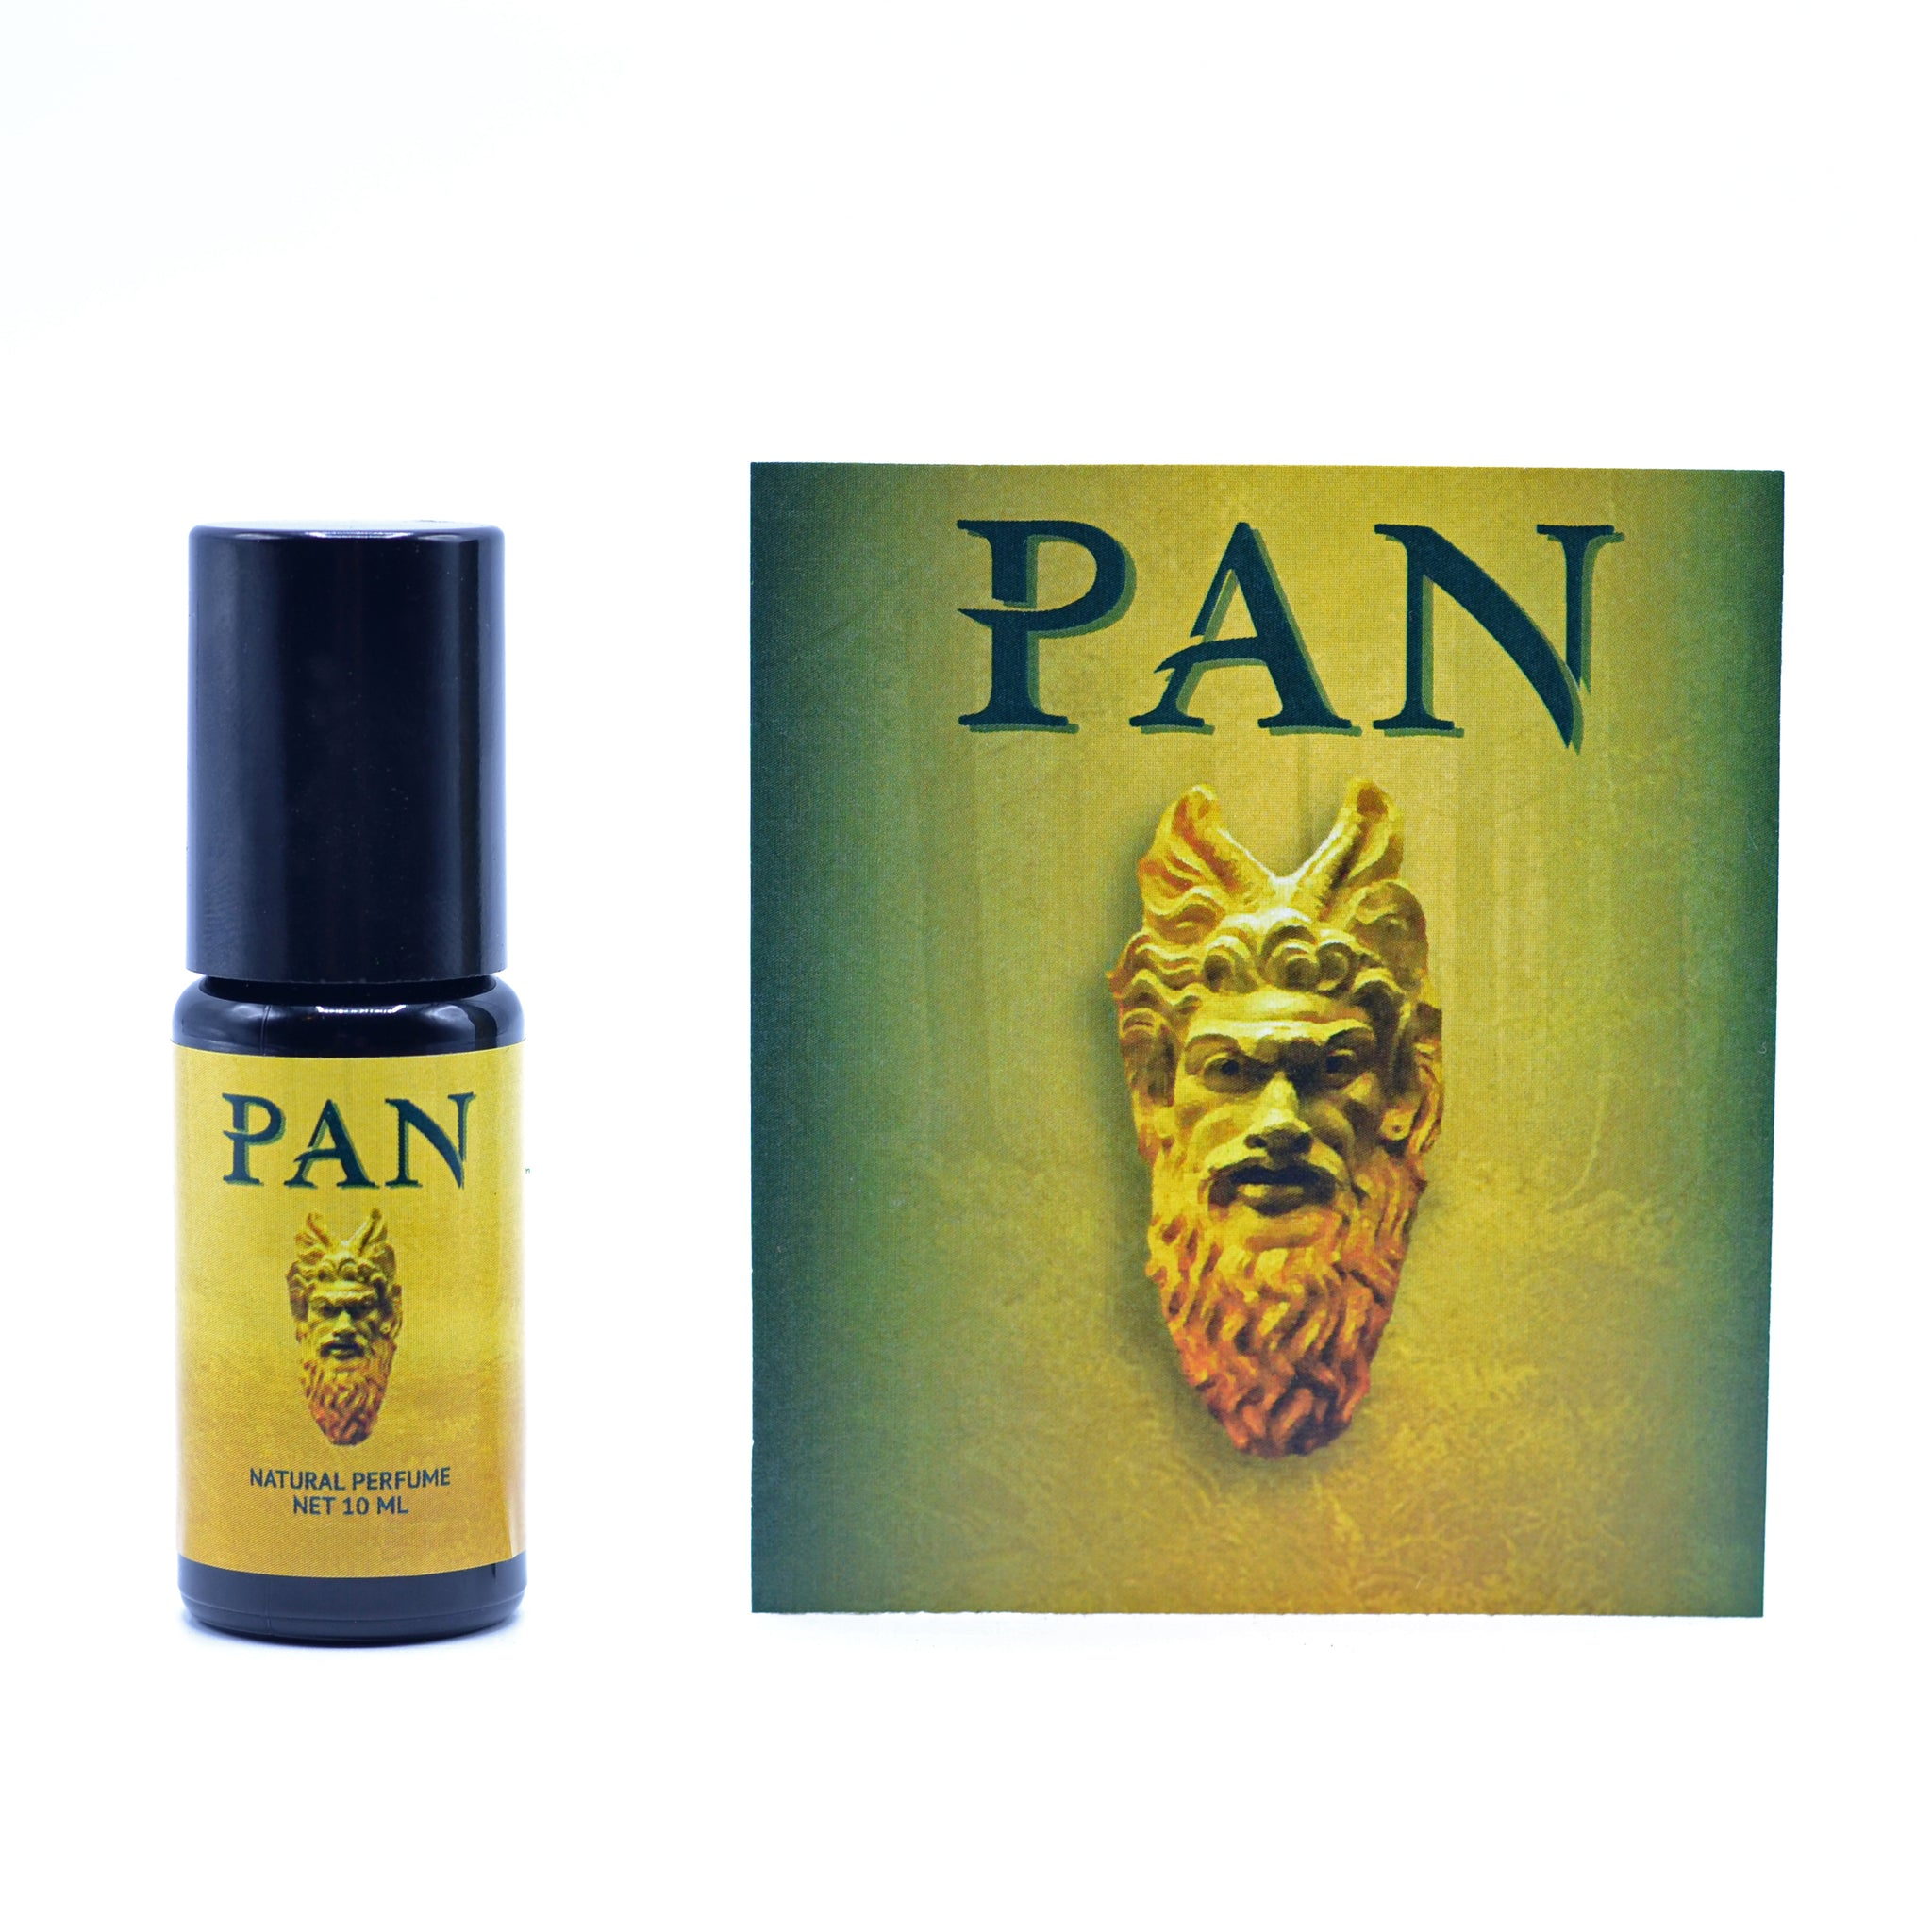 PAN PERFUME ROLL-ON